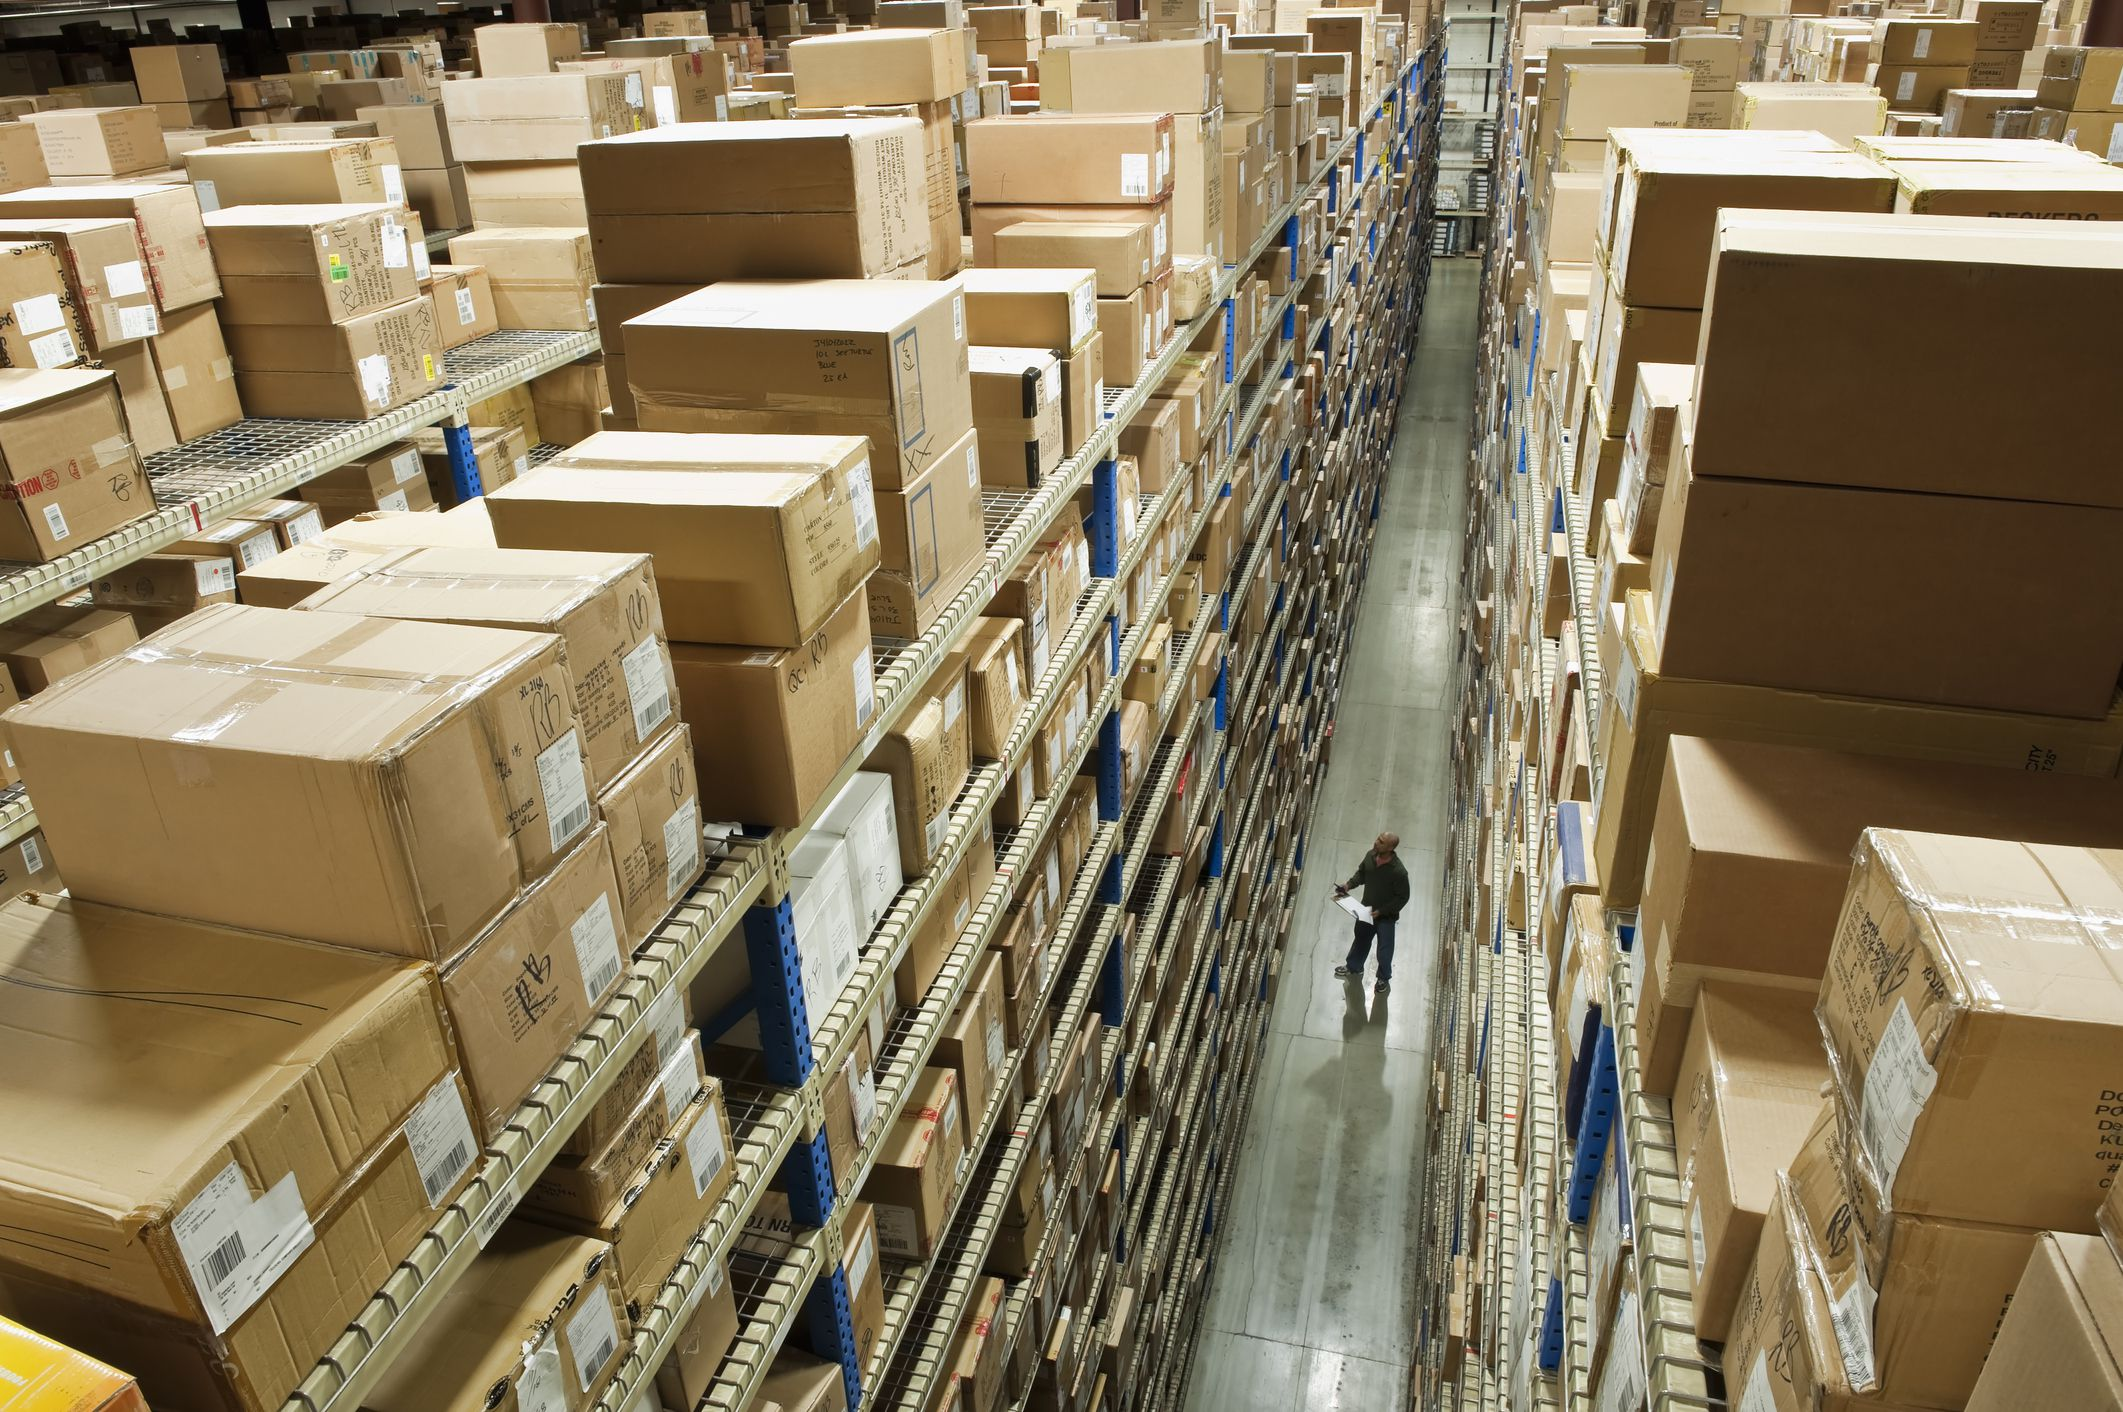 Why Keeping More Inventory Is a Bad Idea